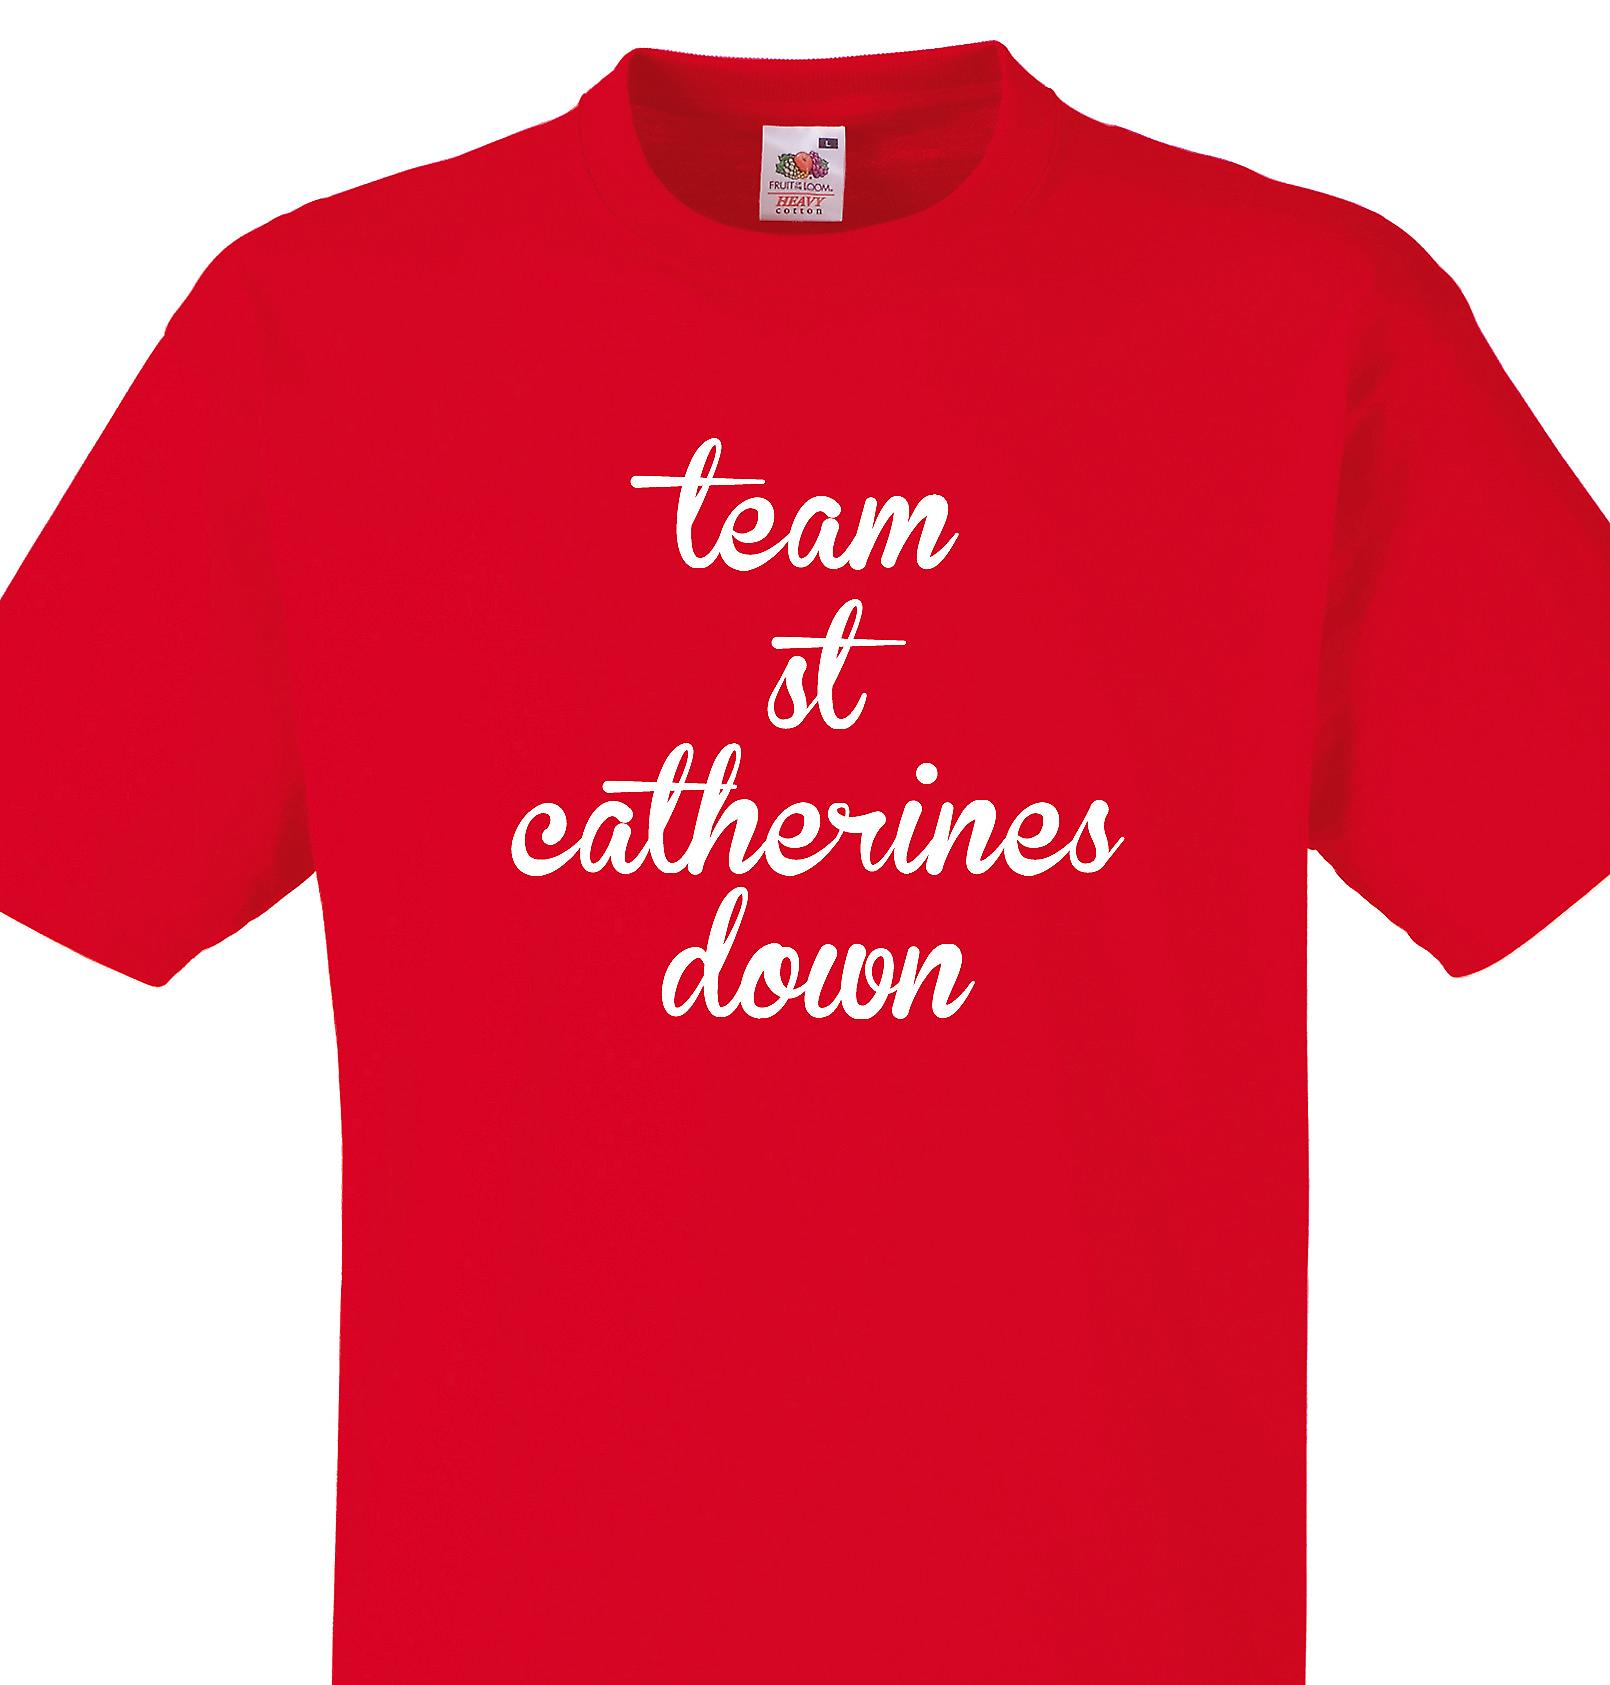 Team St catherines down Red T shirt